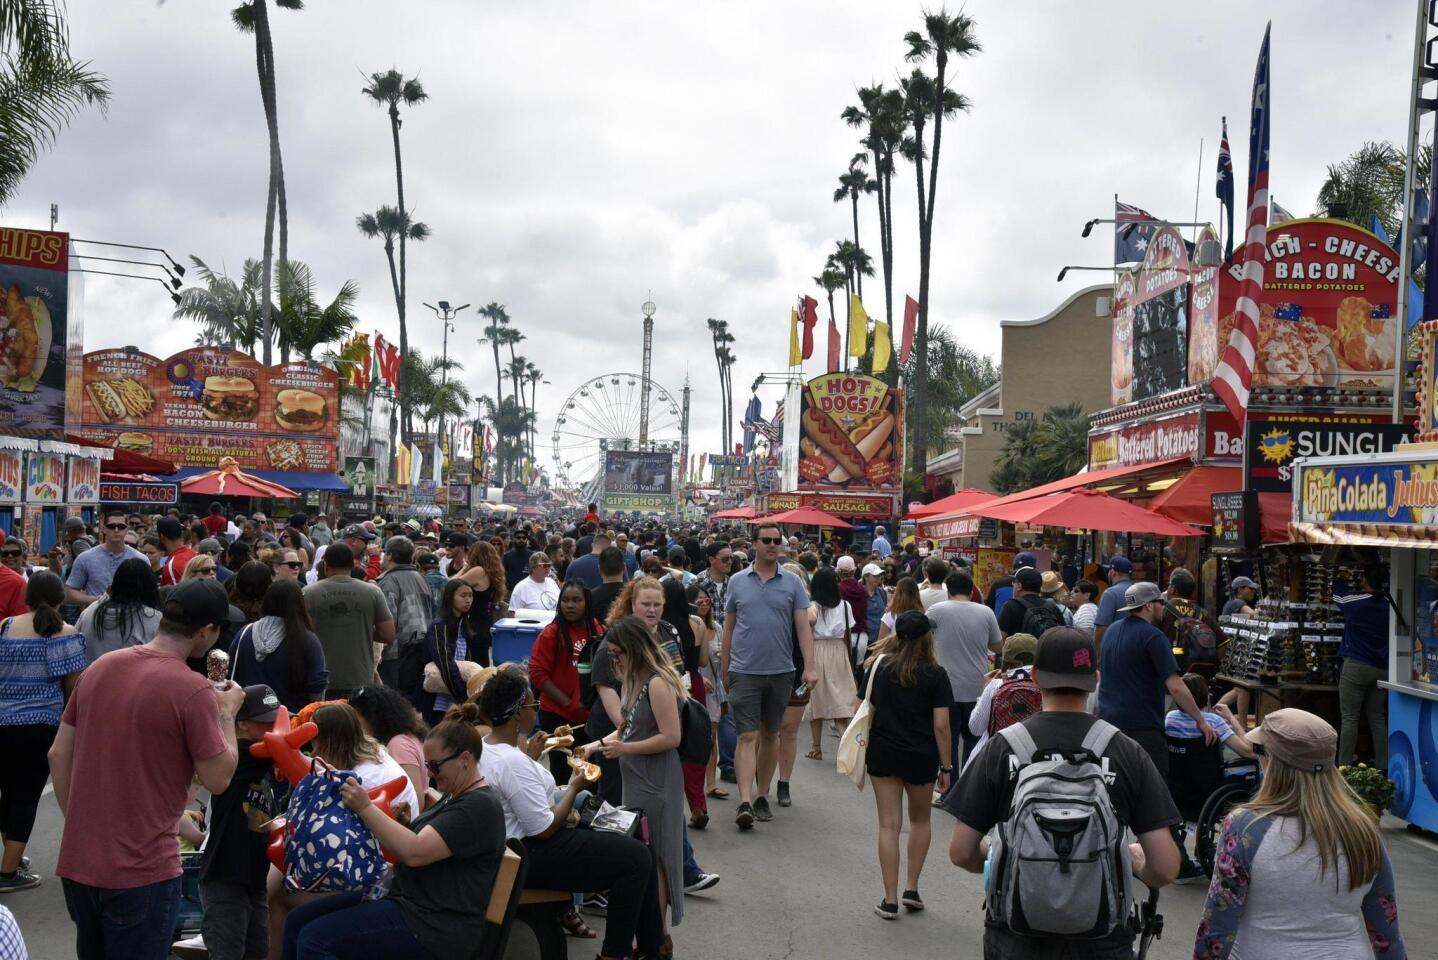 The fair continues to be as popular as ever